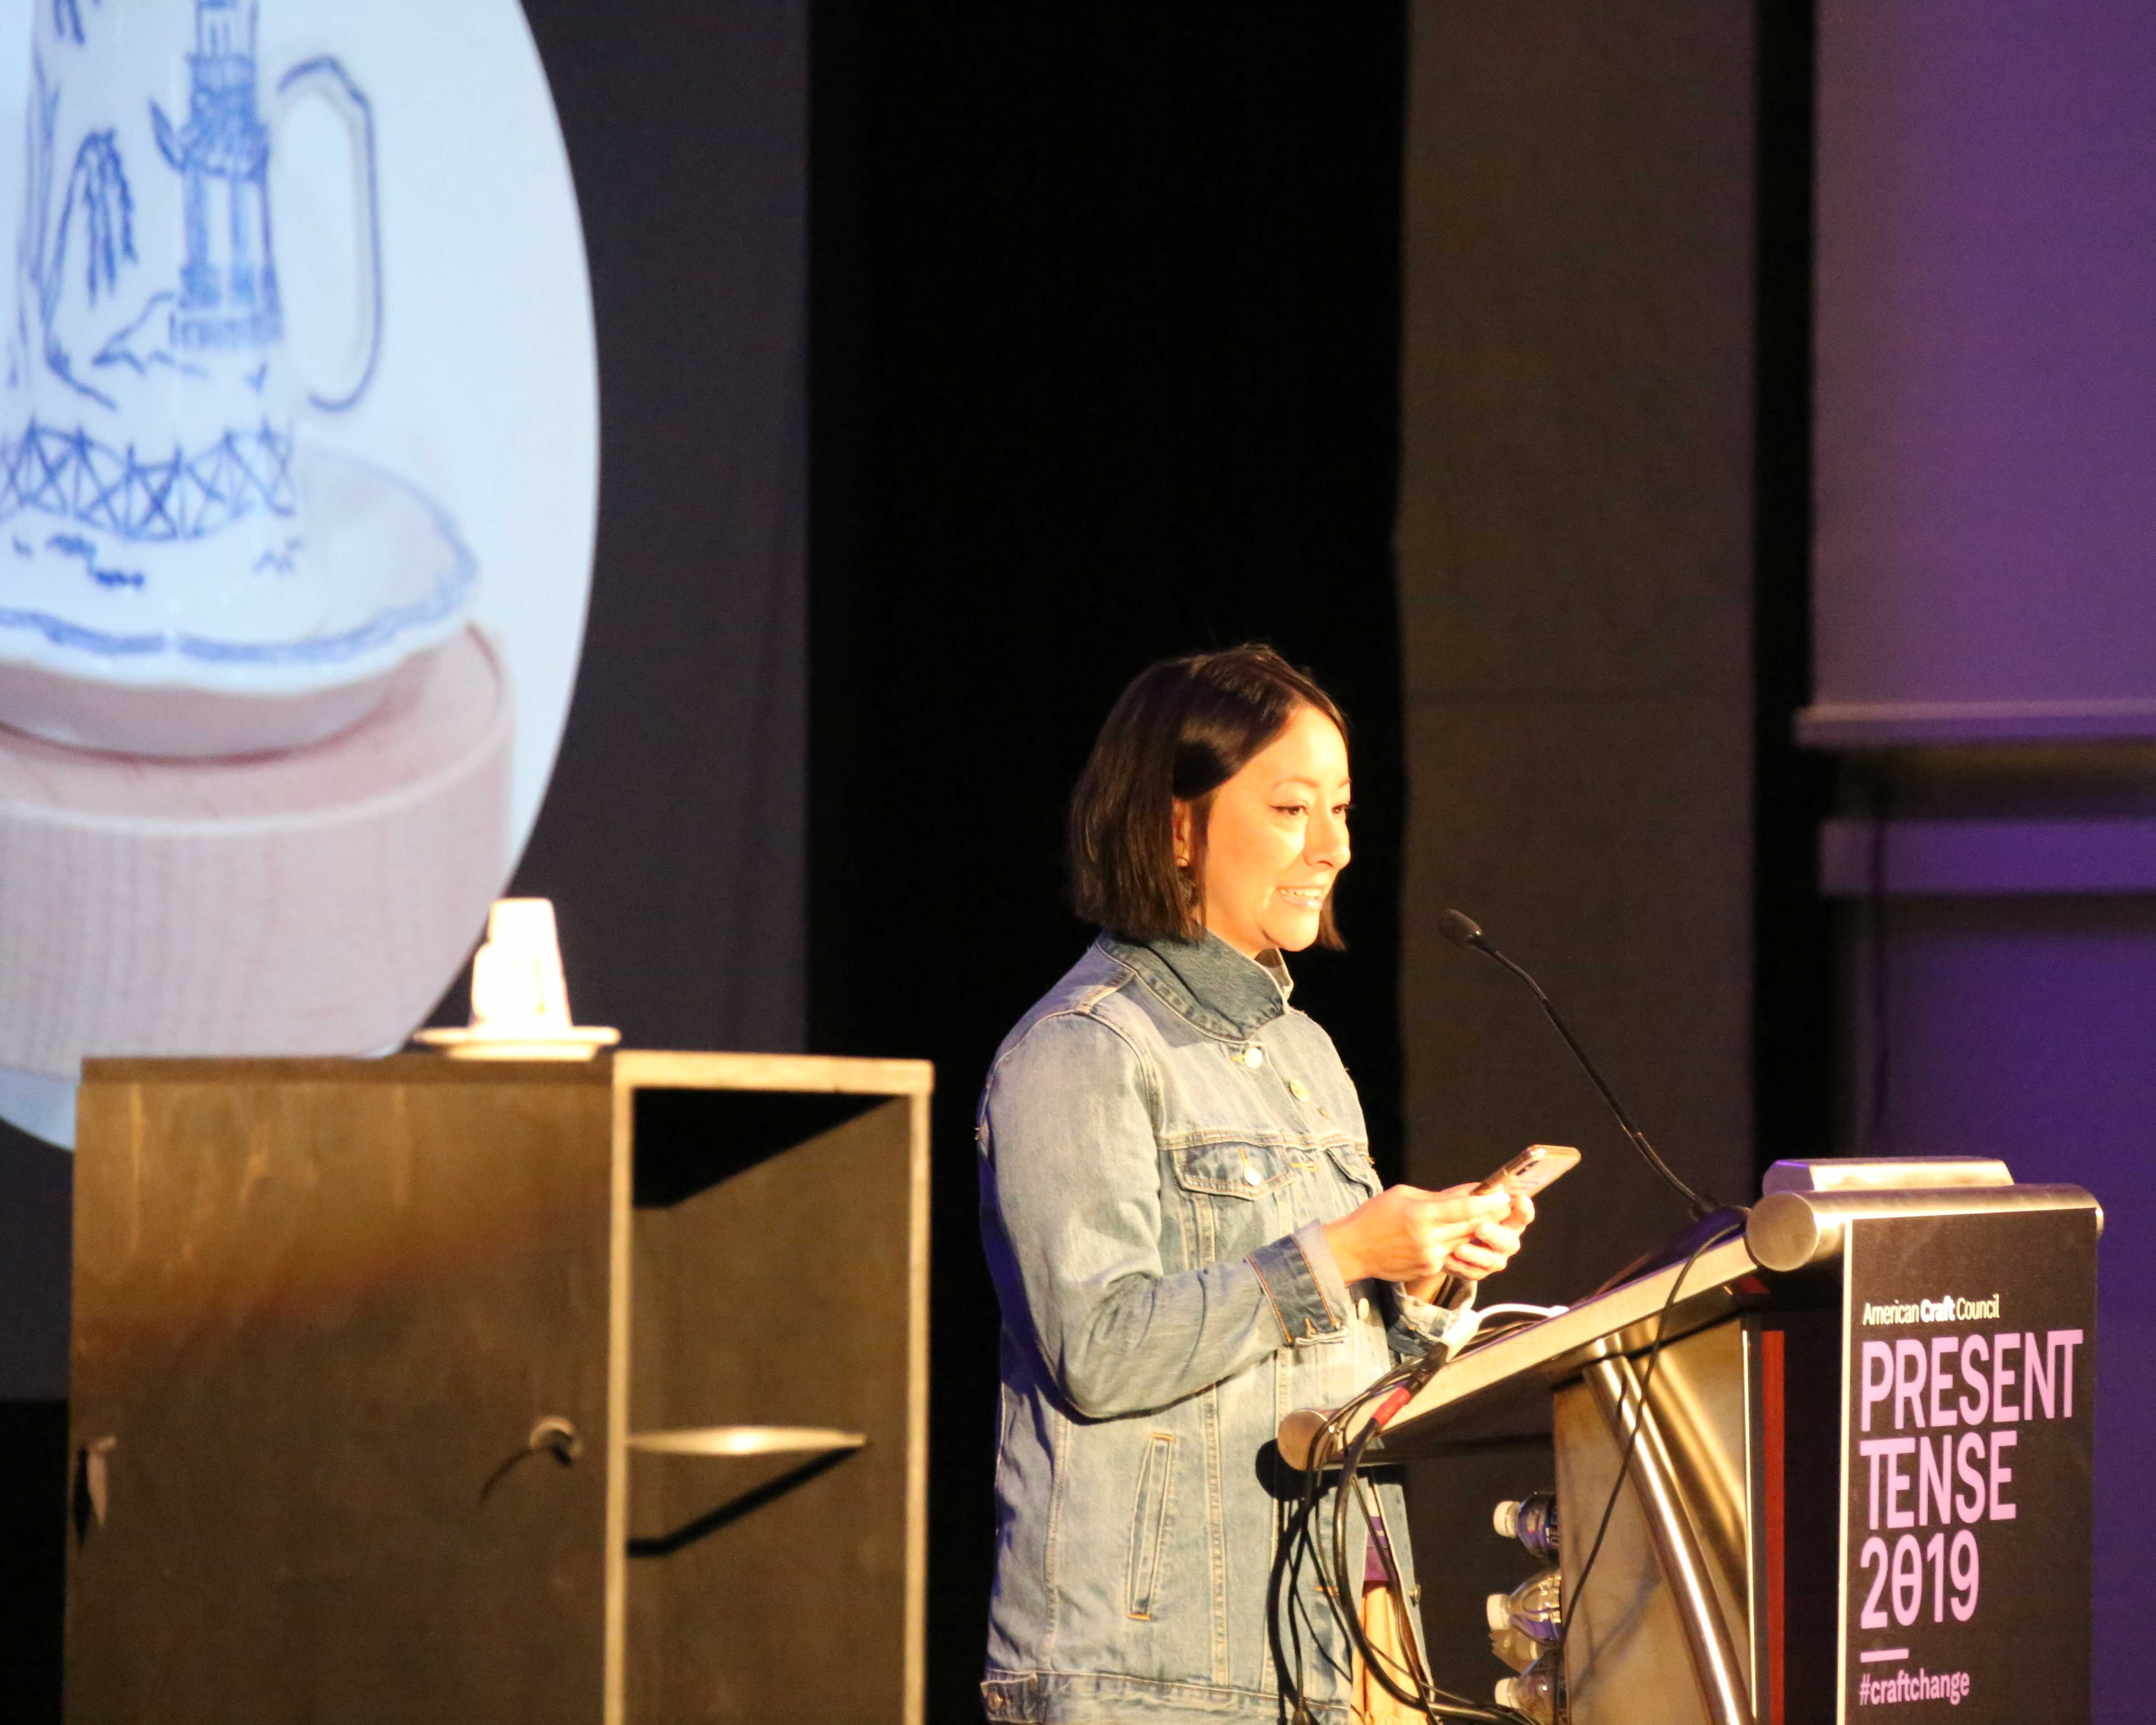 Person presenting at a podium beside a ceramic cup on a pedestal with slideshow image in backdrop